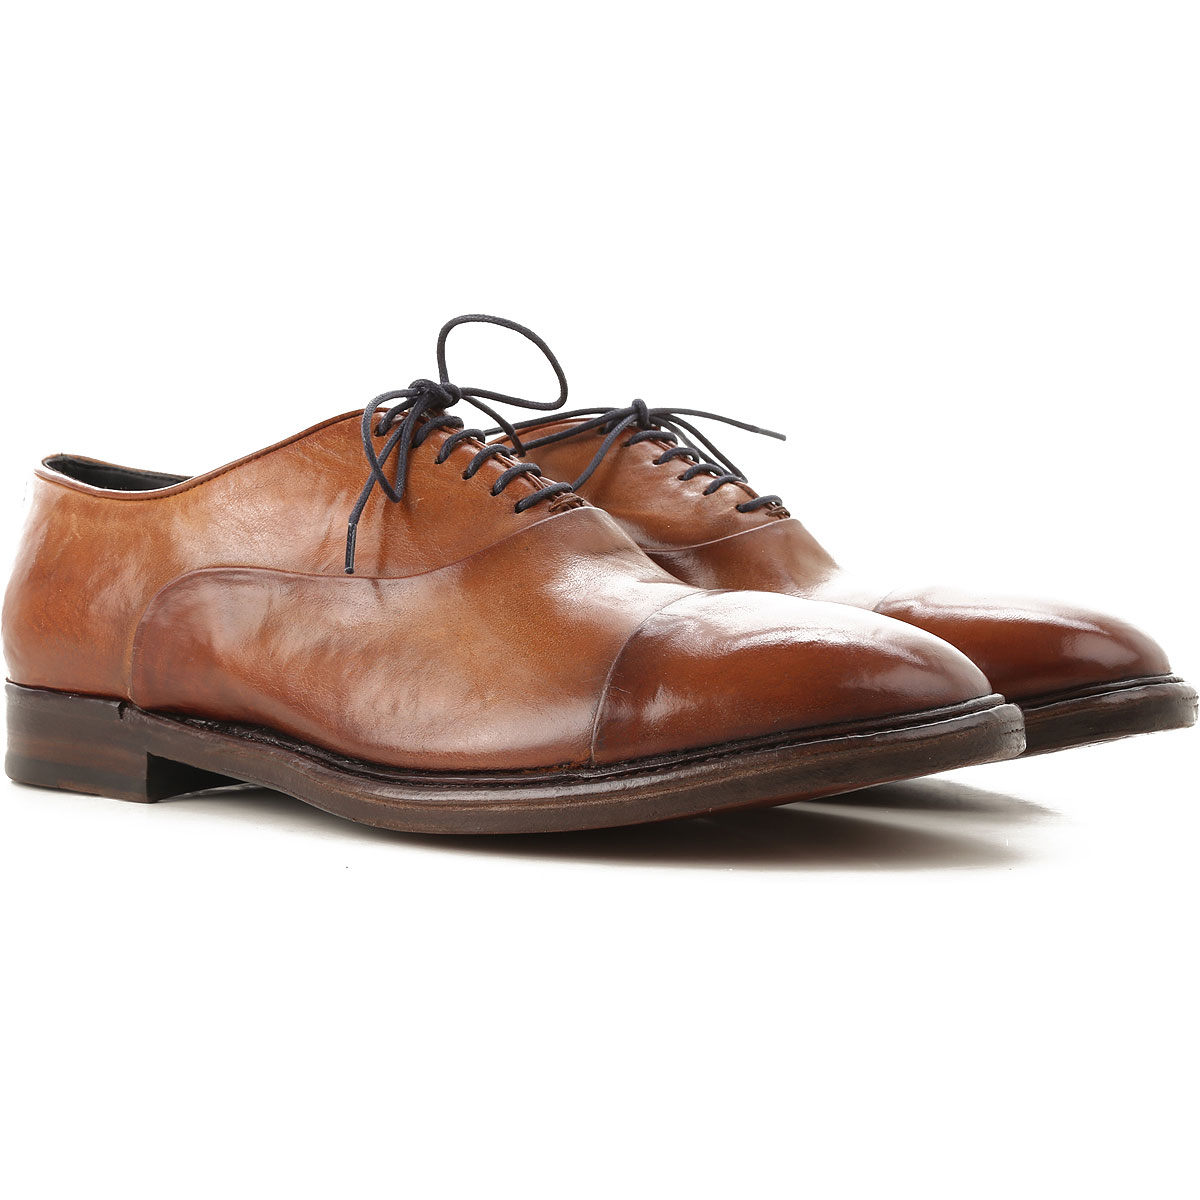 Image of Alberto Fasciani Lace Up Shoes for Men Oxfords, Derbies and Brogues, Leather, Leather, 2017, 10 11 7 8 9